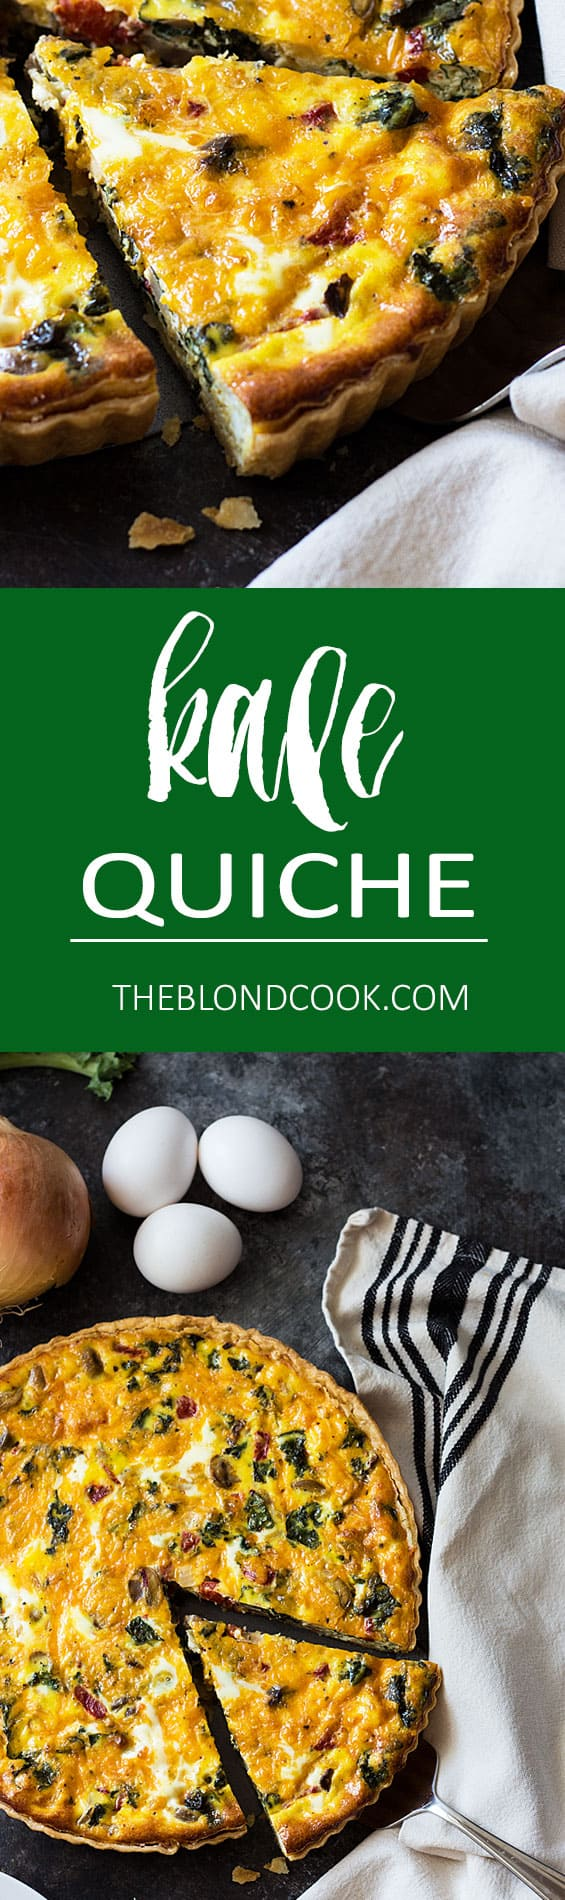 Kale Quiche - A vegetarian quiche chock full of kale, roasted red peppers, mushrooms and onions!